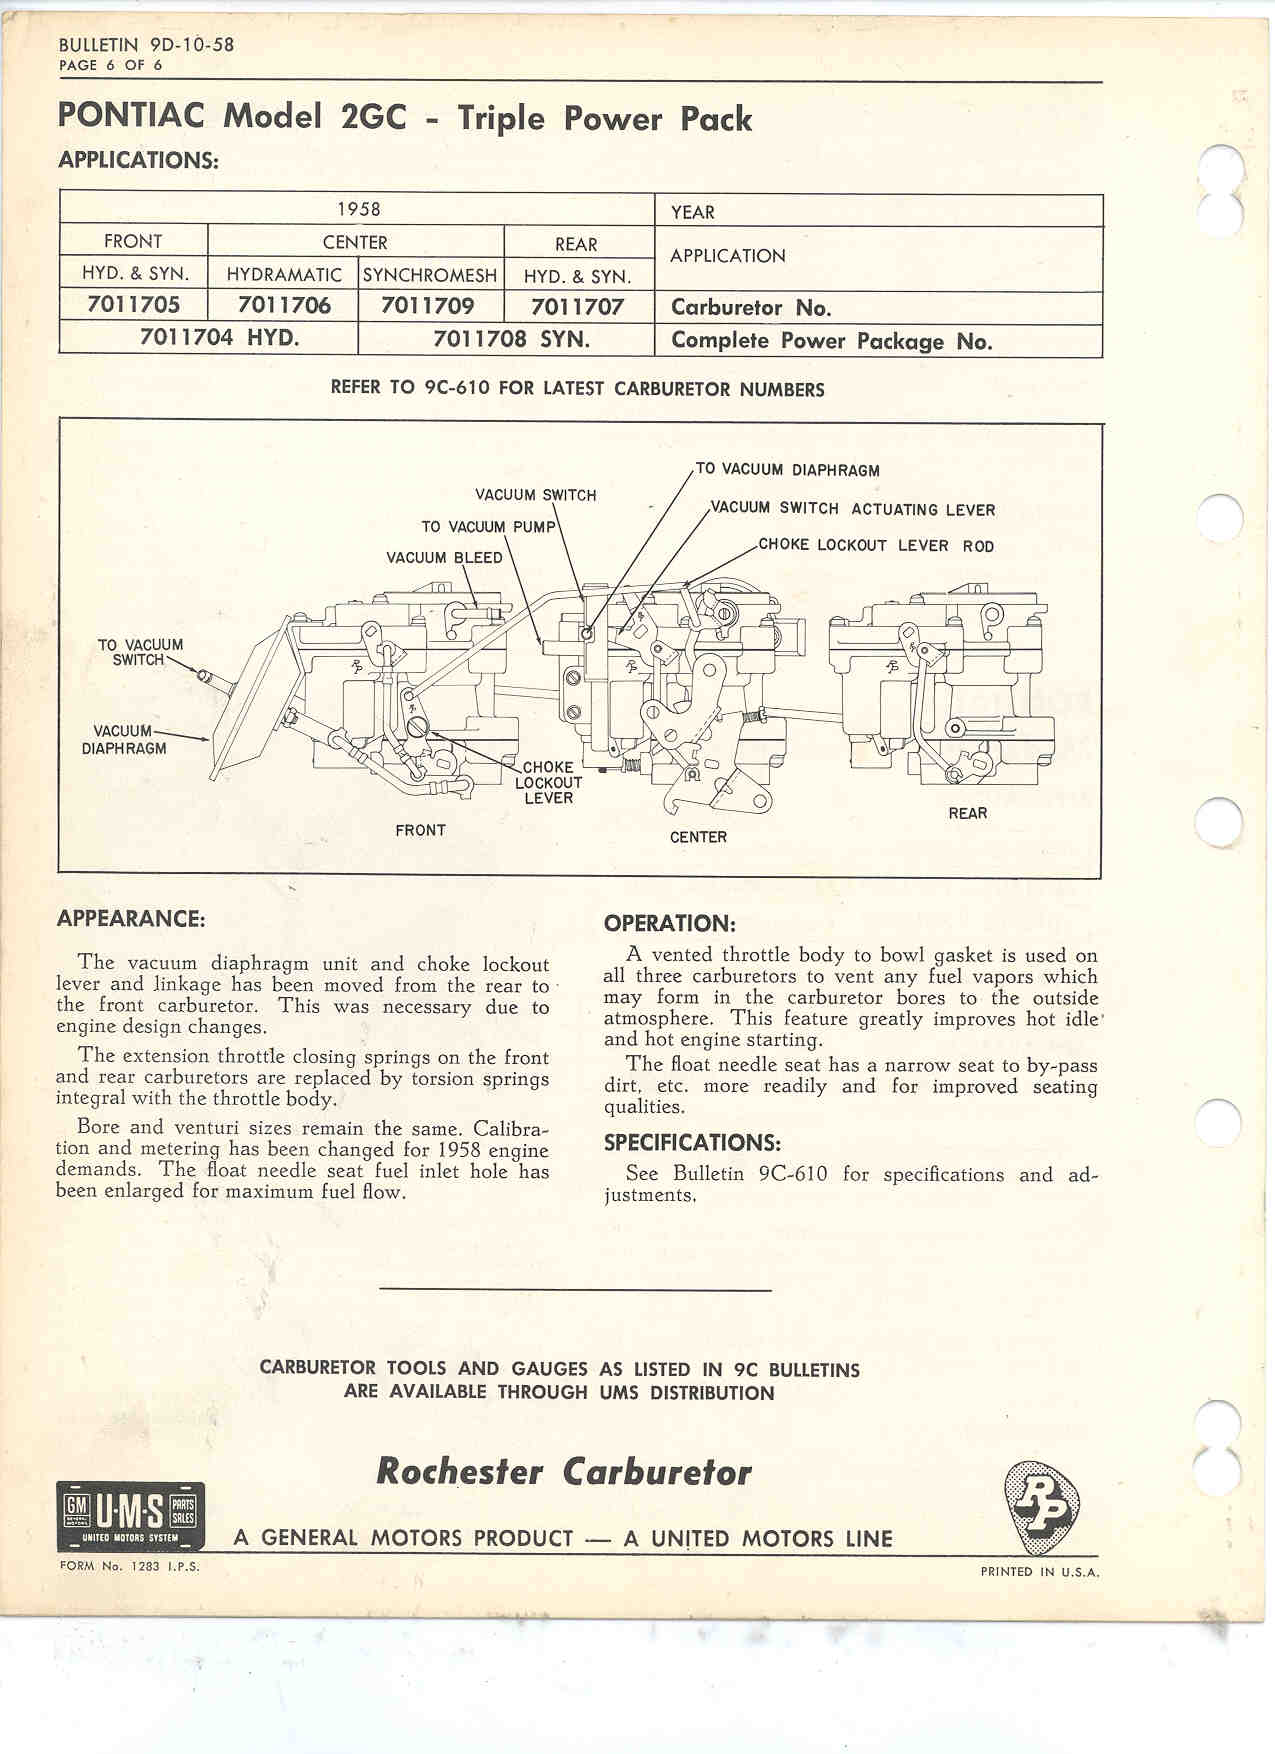 The Carburetor Shop Troubleshooting Chevy Truck Fuel Gauge Wiring Diagram As Well 1977 Rochester Bulletin Here Is Another Link Showing A Slotted Gasket Regular Often Used For Marine Carbs And Some Other Hot Idle Compensation